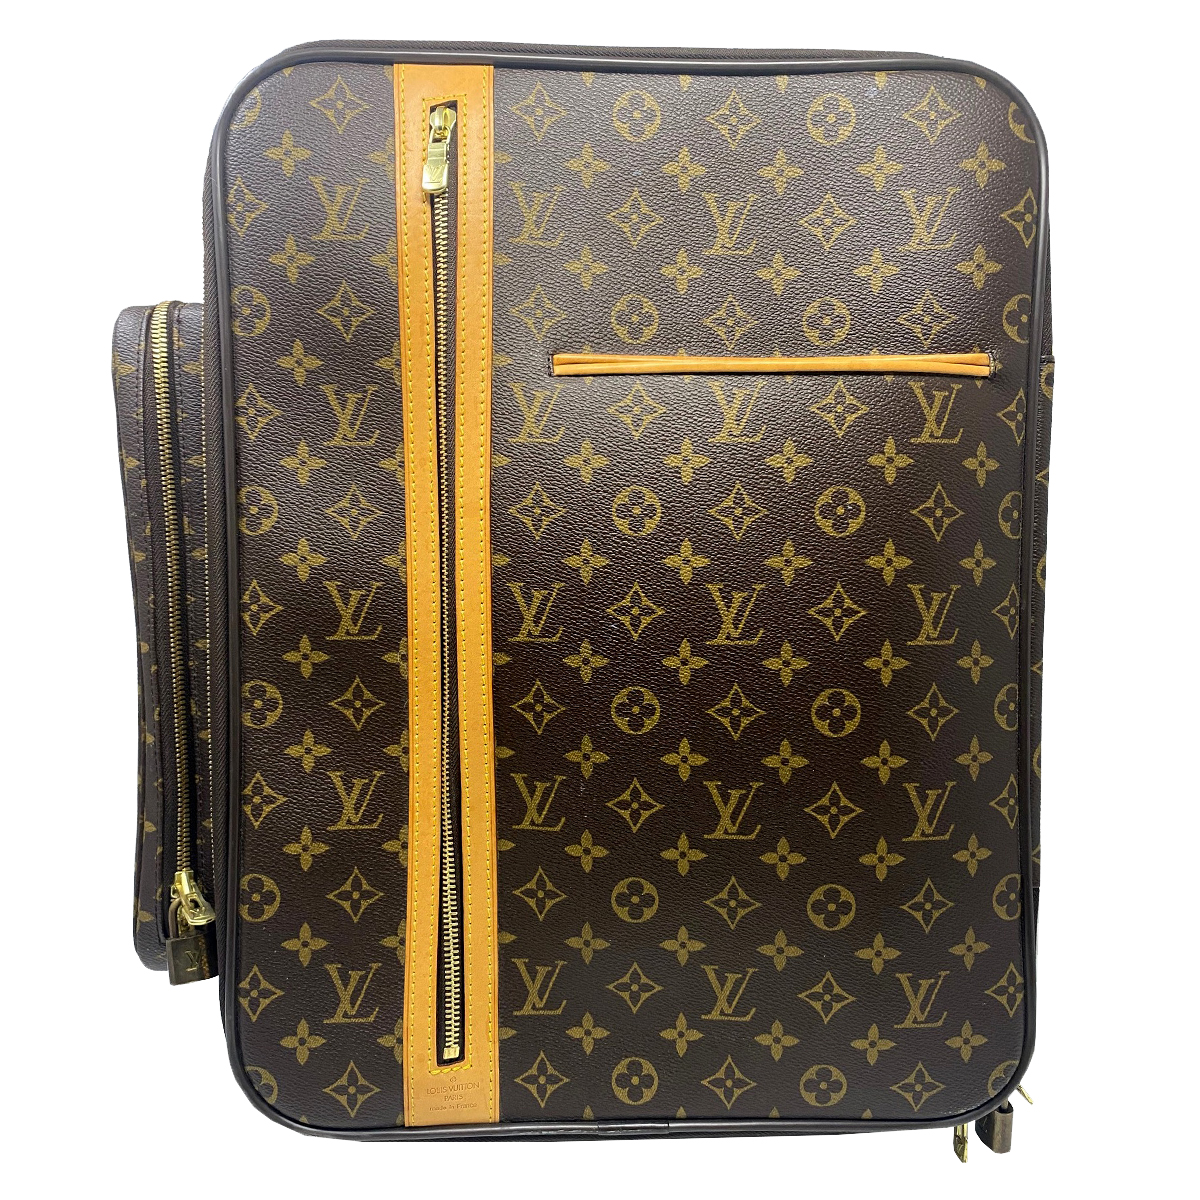 Louis Vuitton Bosphore 50 Monogram canvas Trolley Luggage